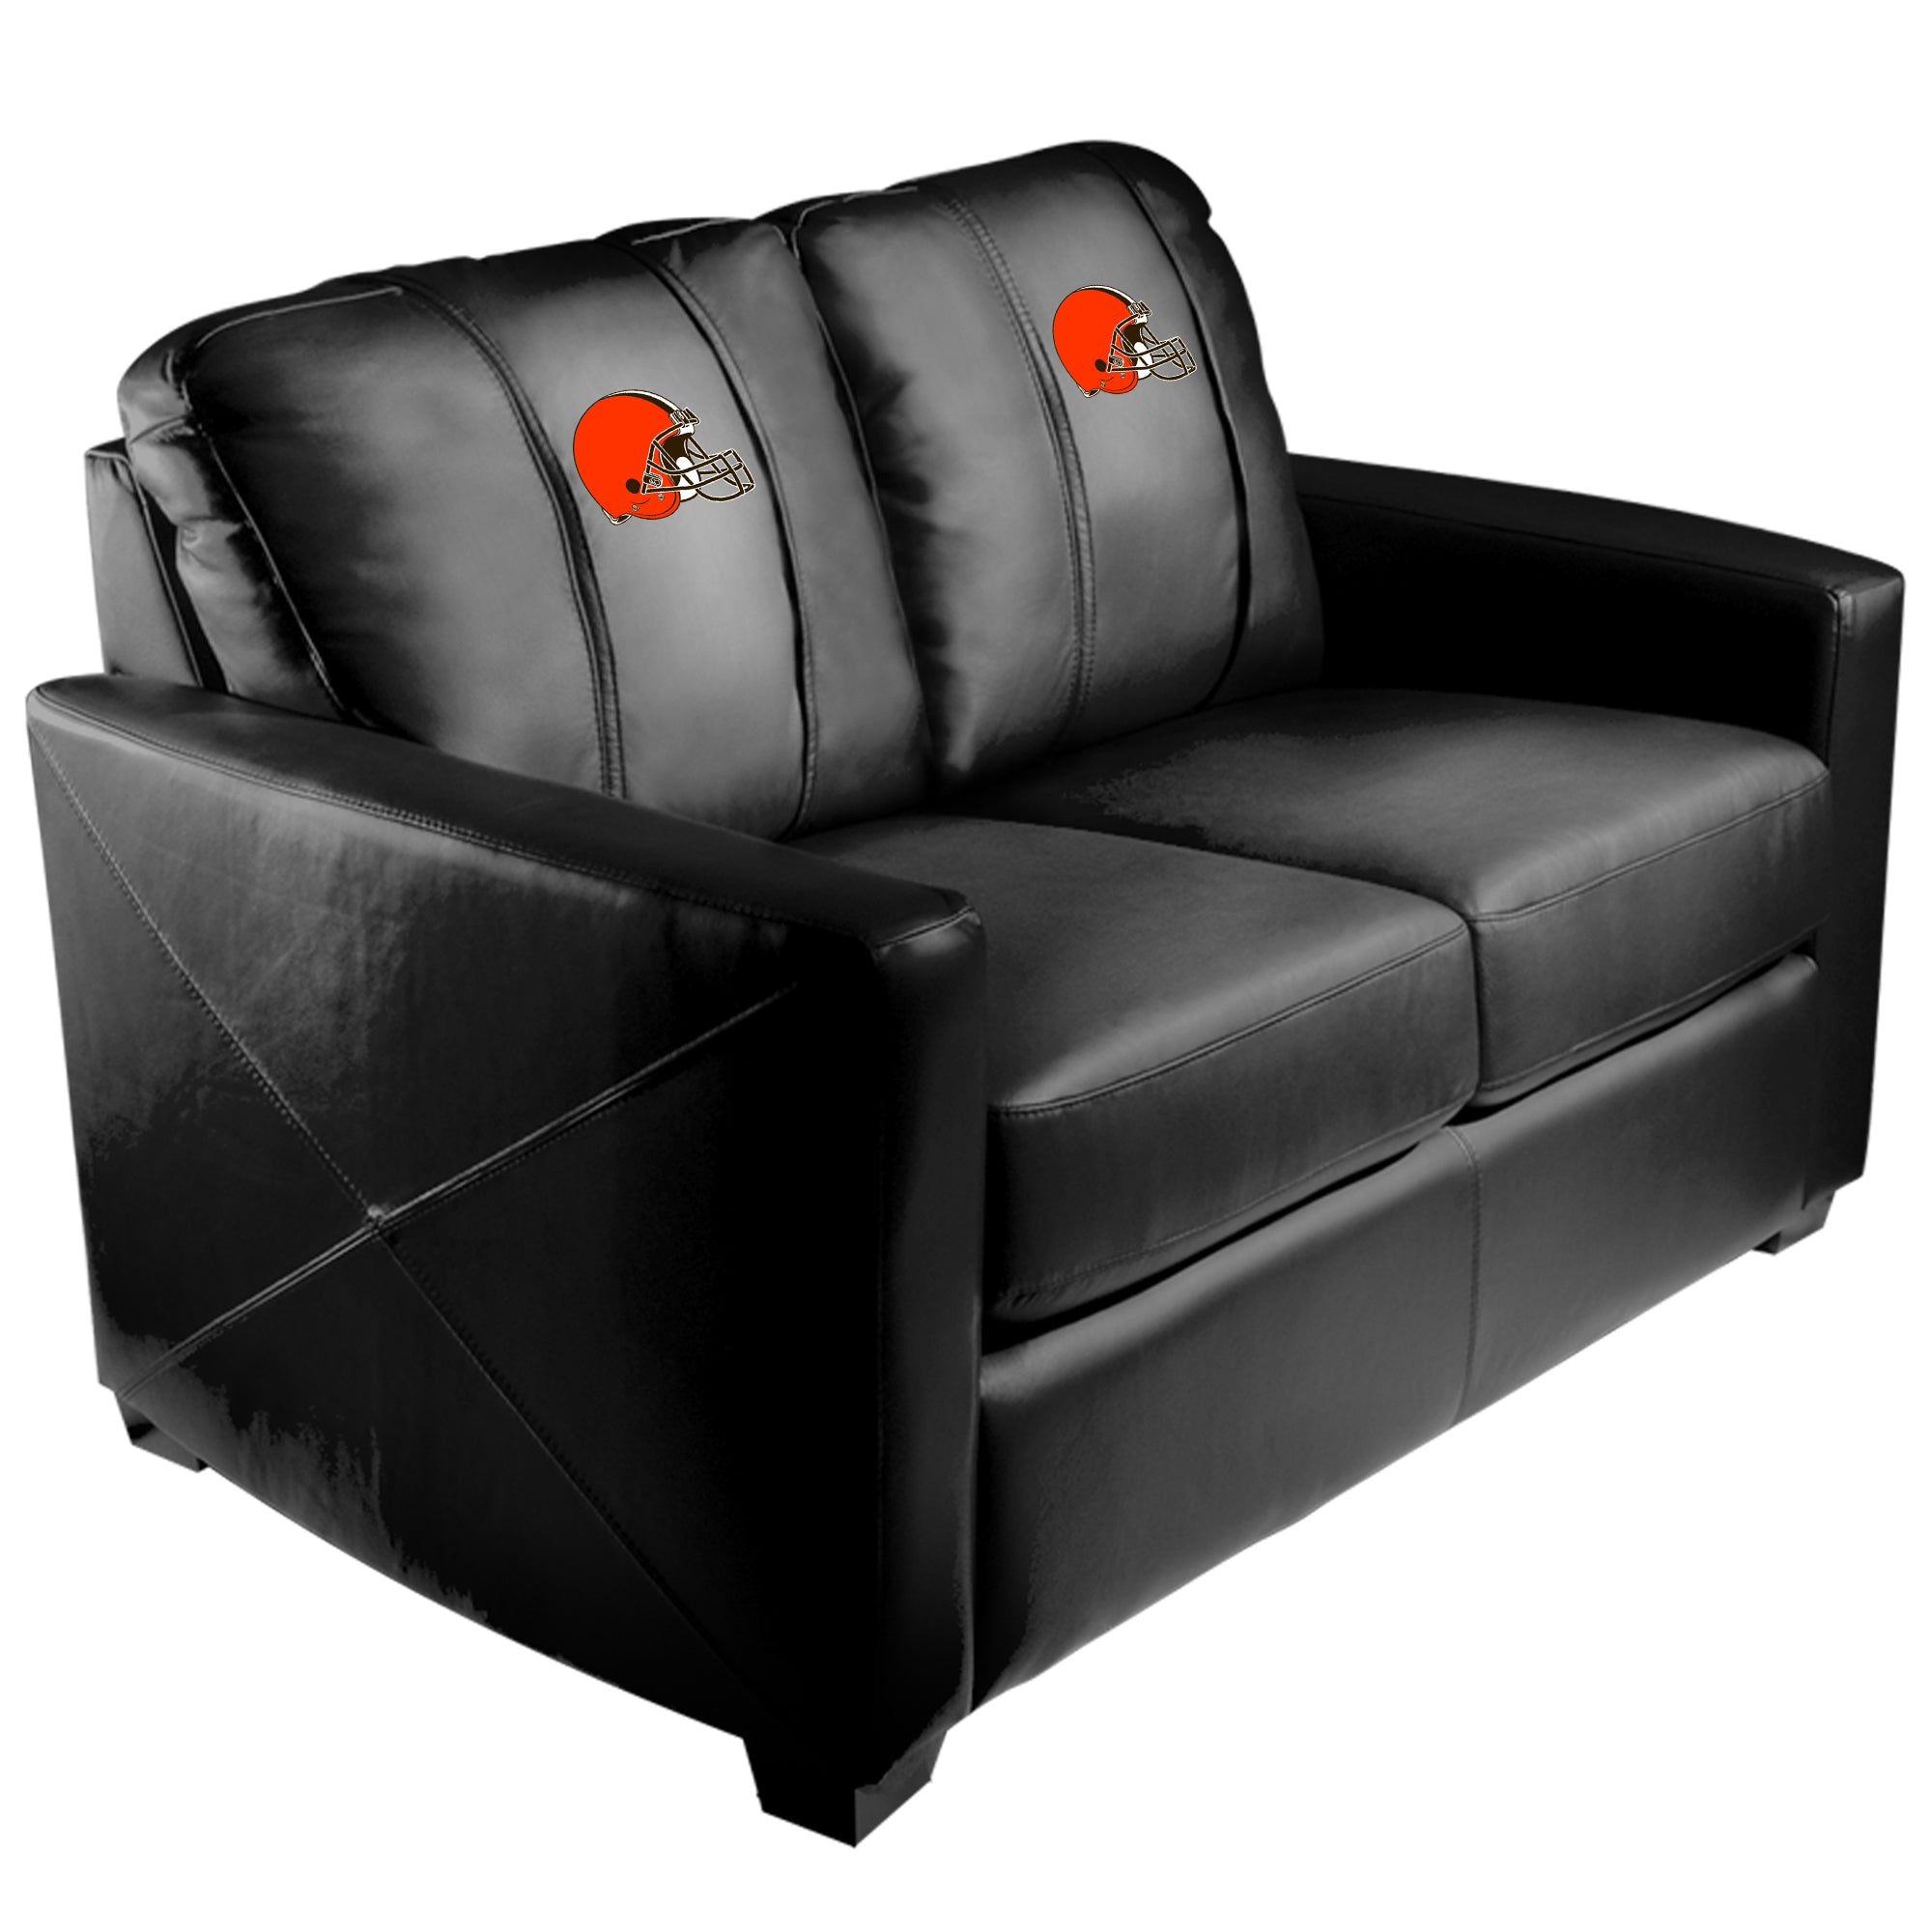 Silver Loveseat with  Cleveland Browns Primary Logo